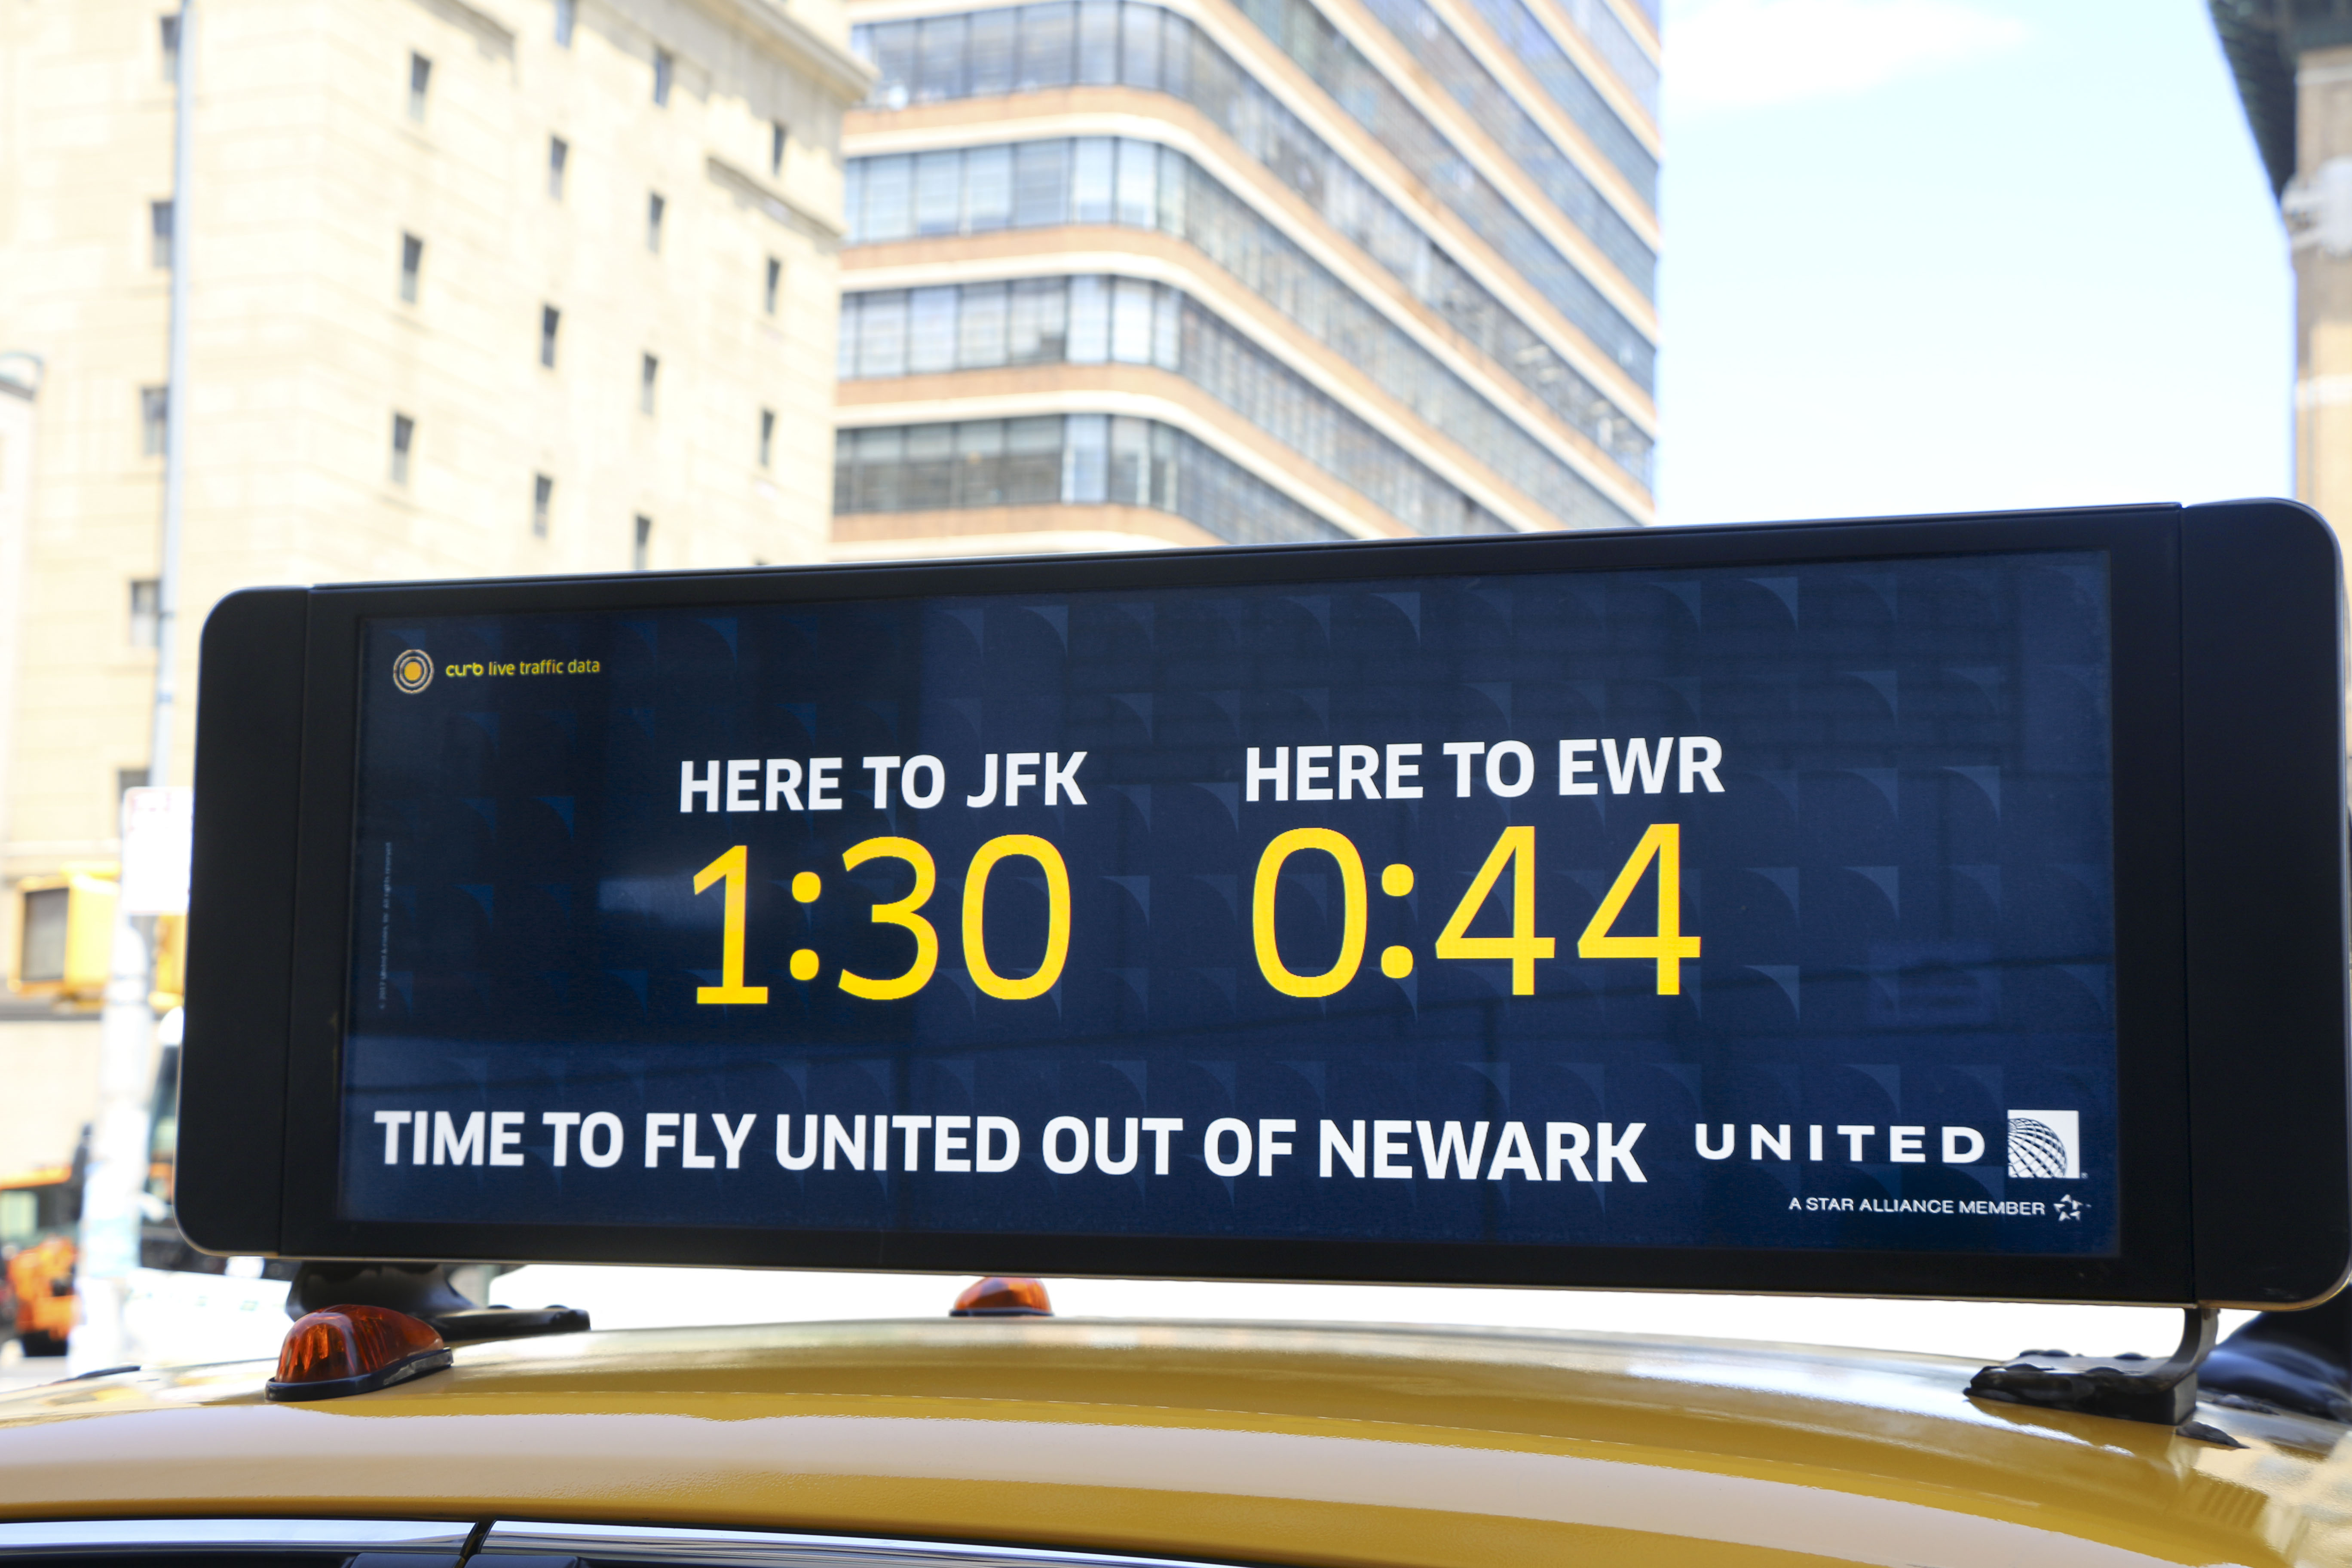 Mcgarrybowen and United Really Think You Should Consider Flying Out of Newark | AgencySpy